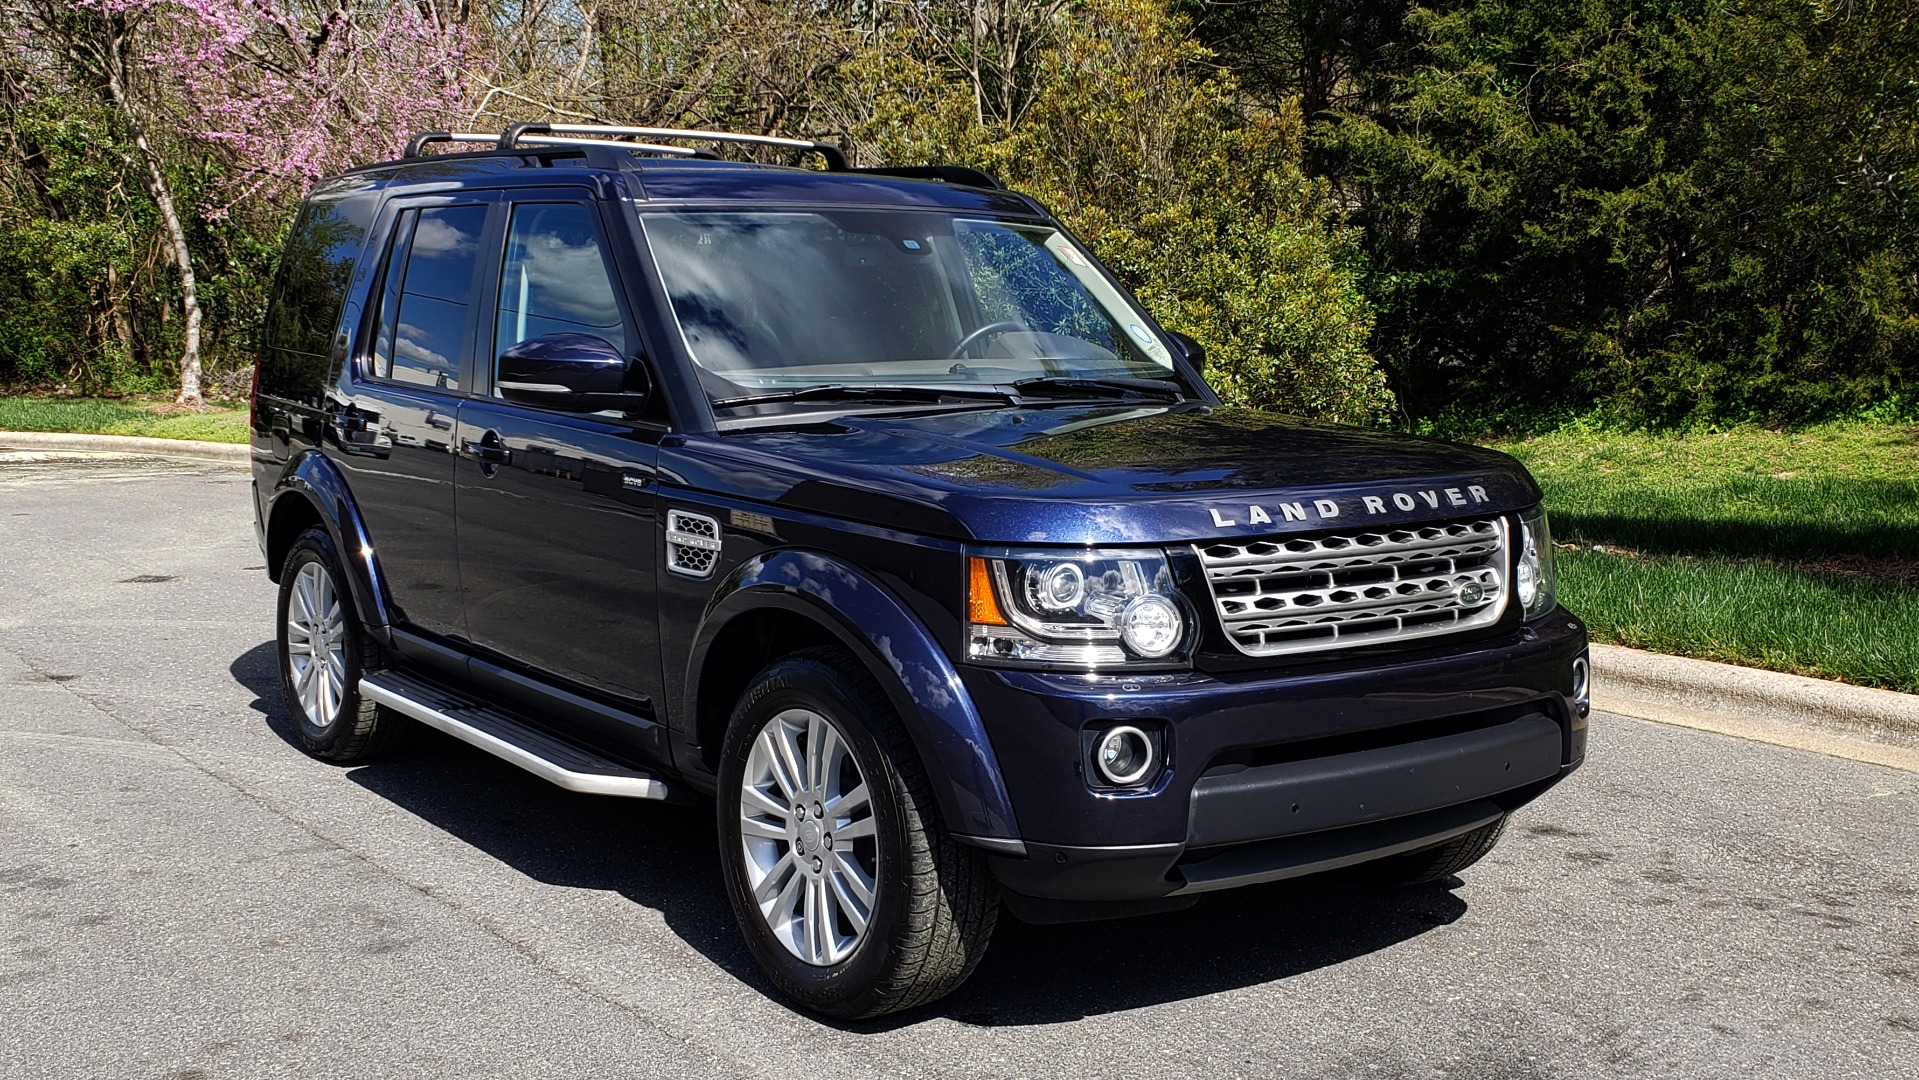 Used 2016 Land Rover LR4 HSE LUX / NAV / SUNROOF / MERIDIAN / REARVIEW / 3-ROW for sale Sold at Formula Imports in Charlotte NC 28227 4